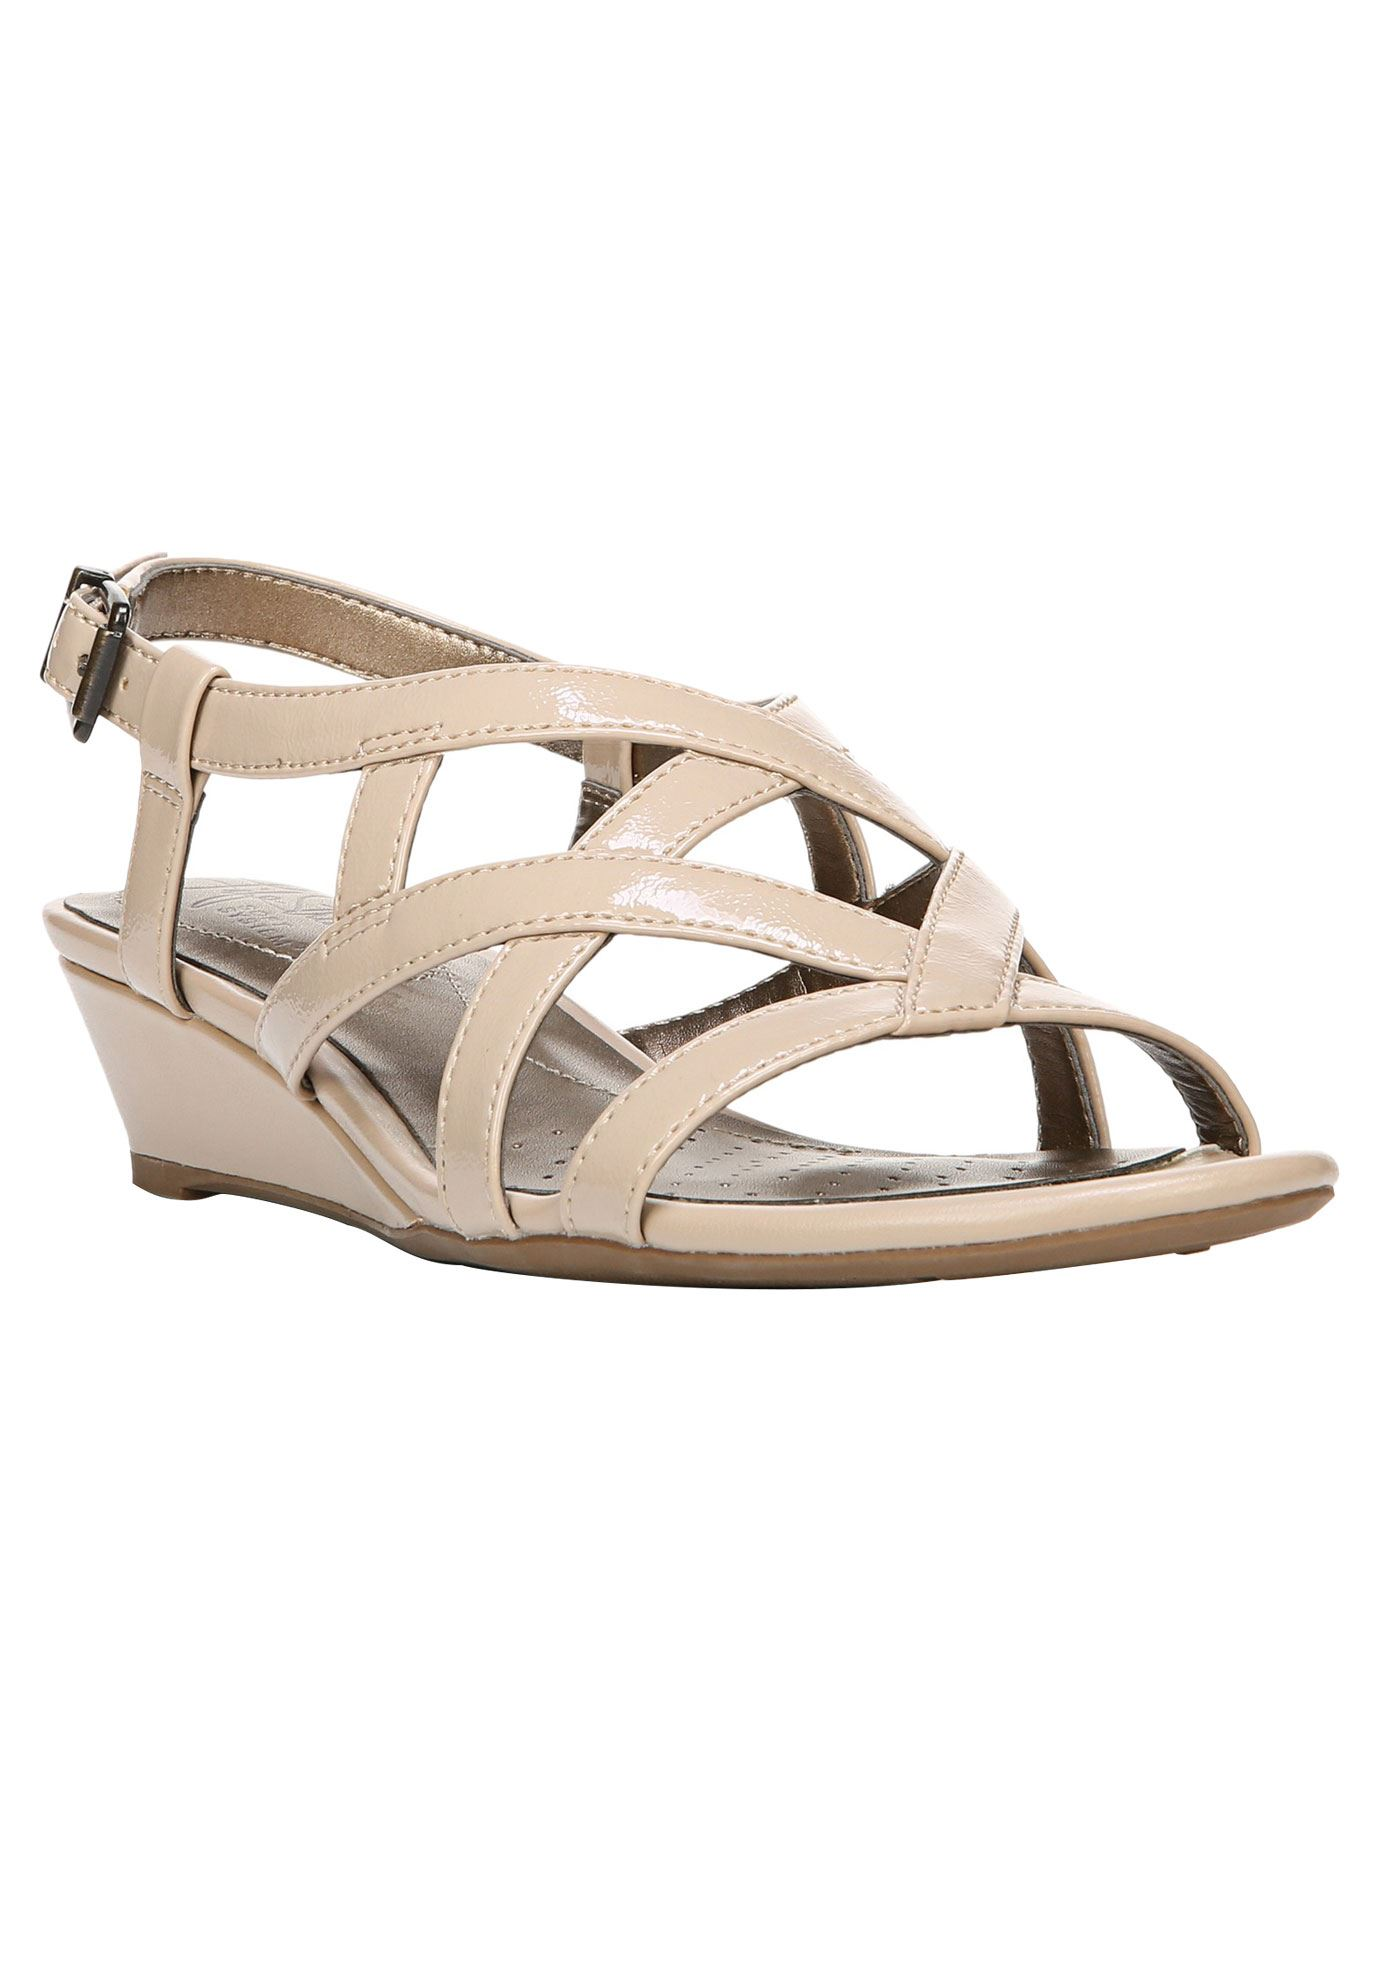 Yuppies Sandals by LifeStride®,